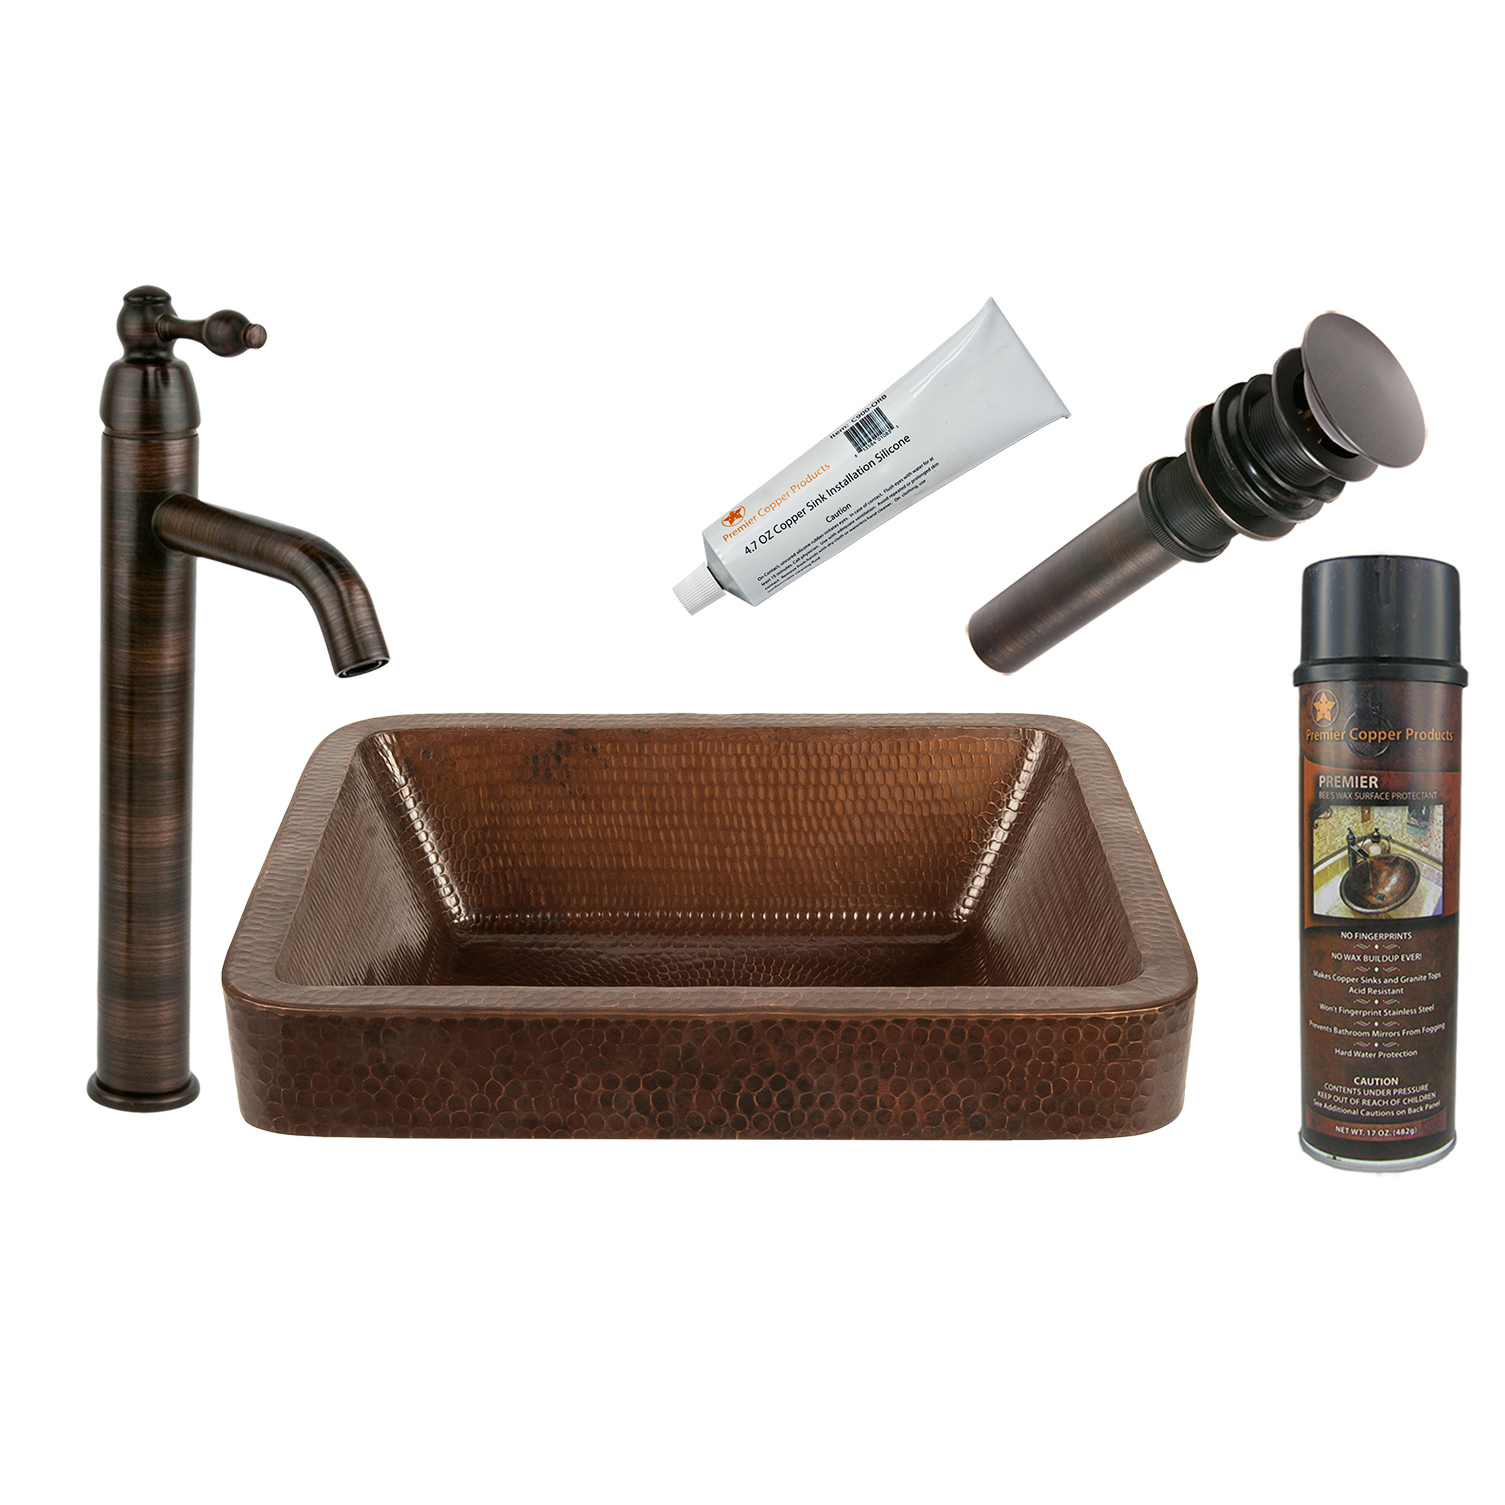 17 inch Rectangle Skirted Vessel Hammered Copper Sink, Faucet and Accessories Package, Oil Rubbed Bronze